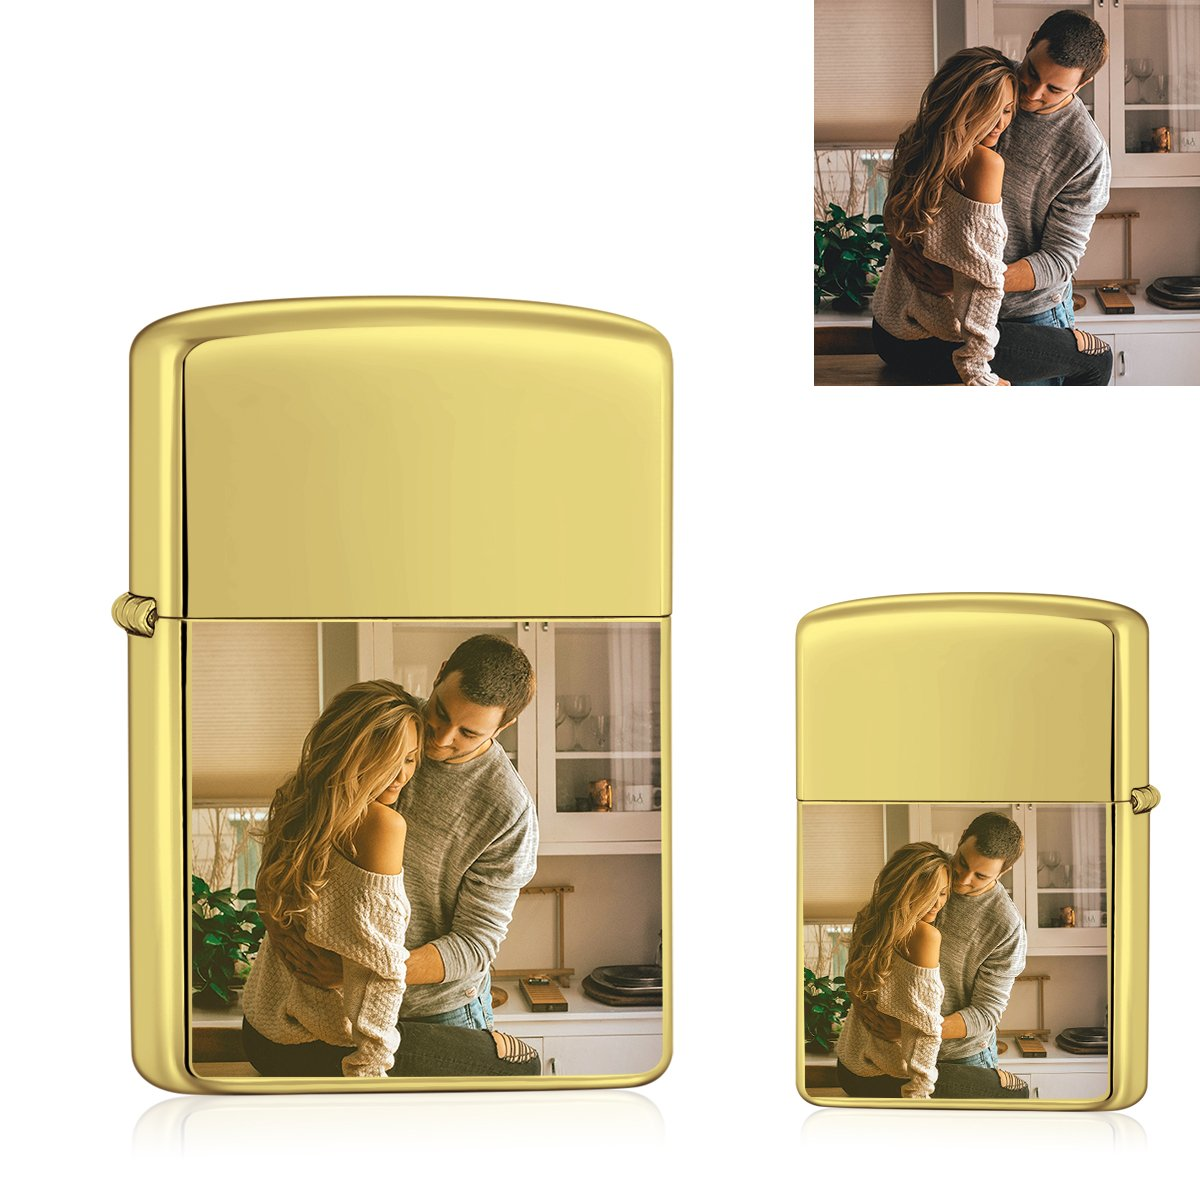 Golden | Zippo Style Custom Engraved Color Photo Lighter | USB Power | For Boyfriend